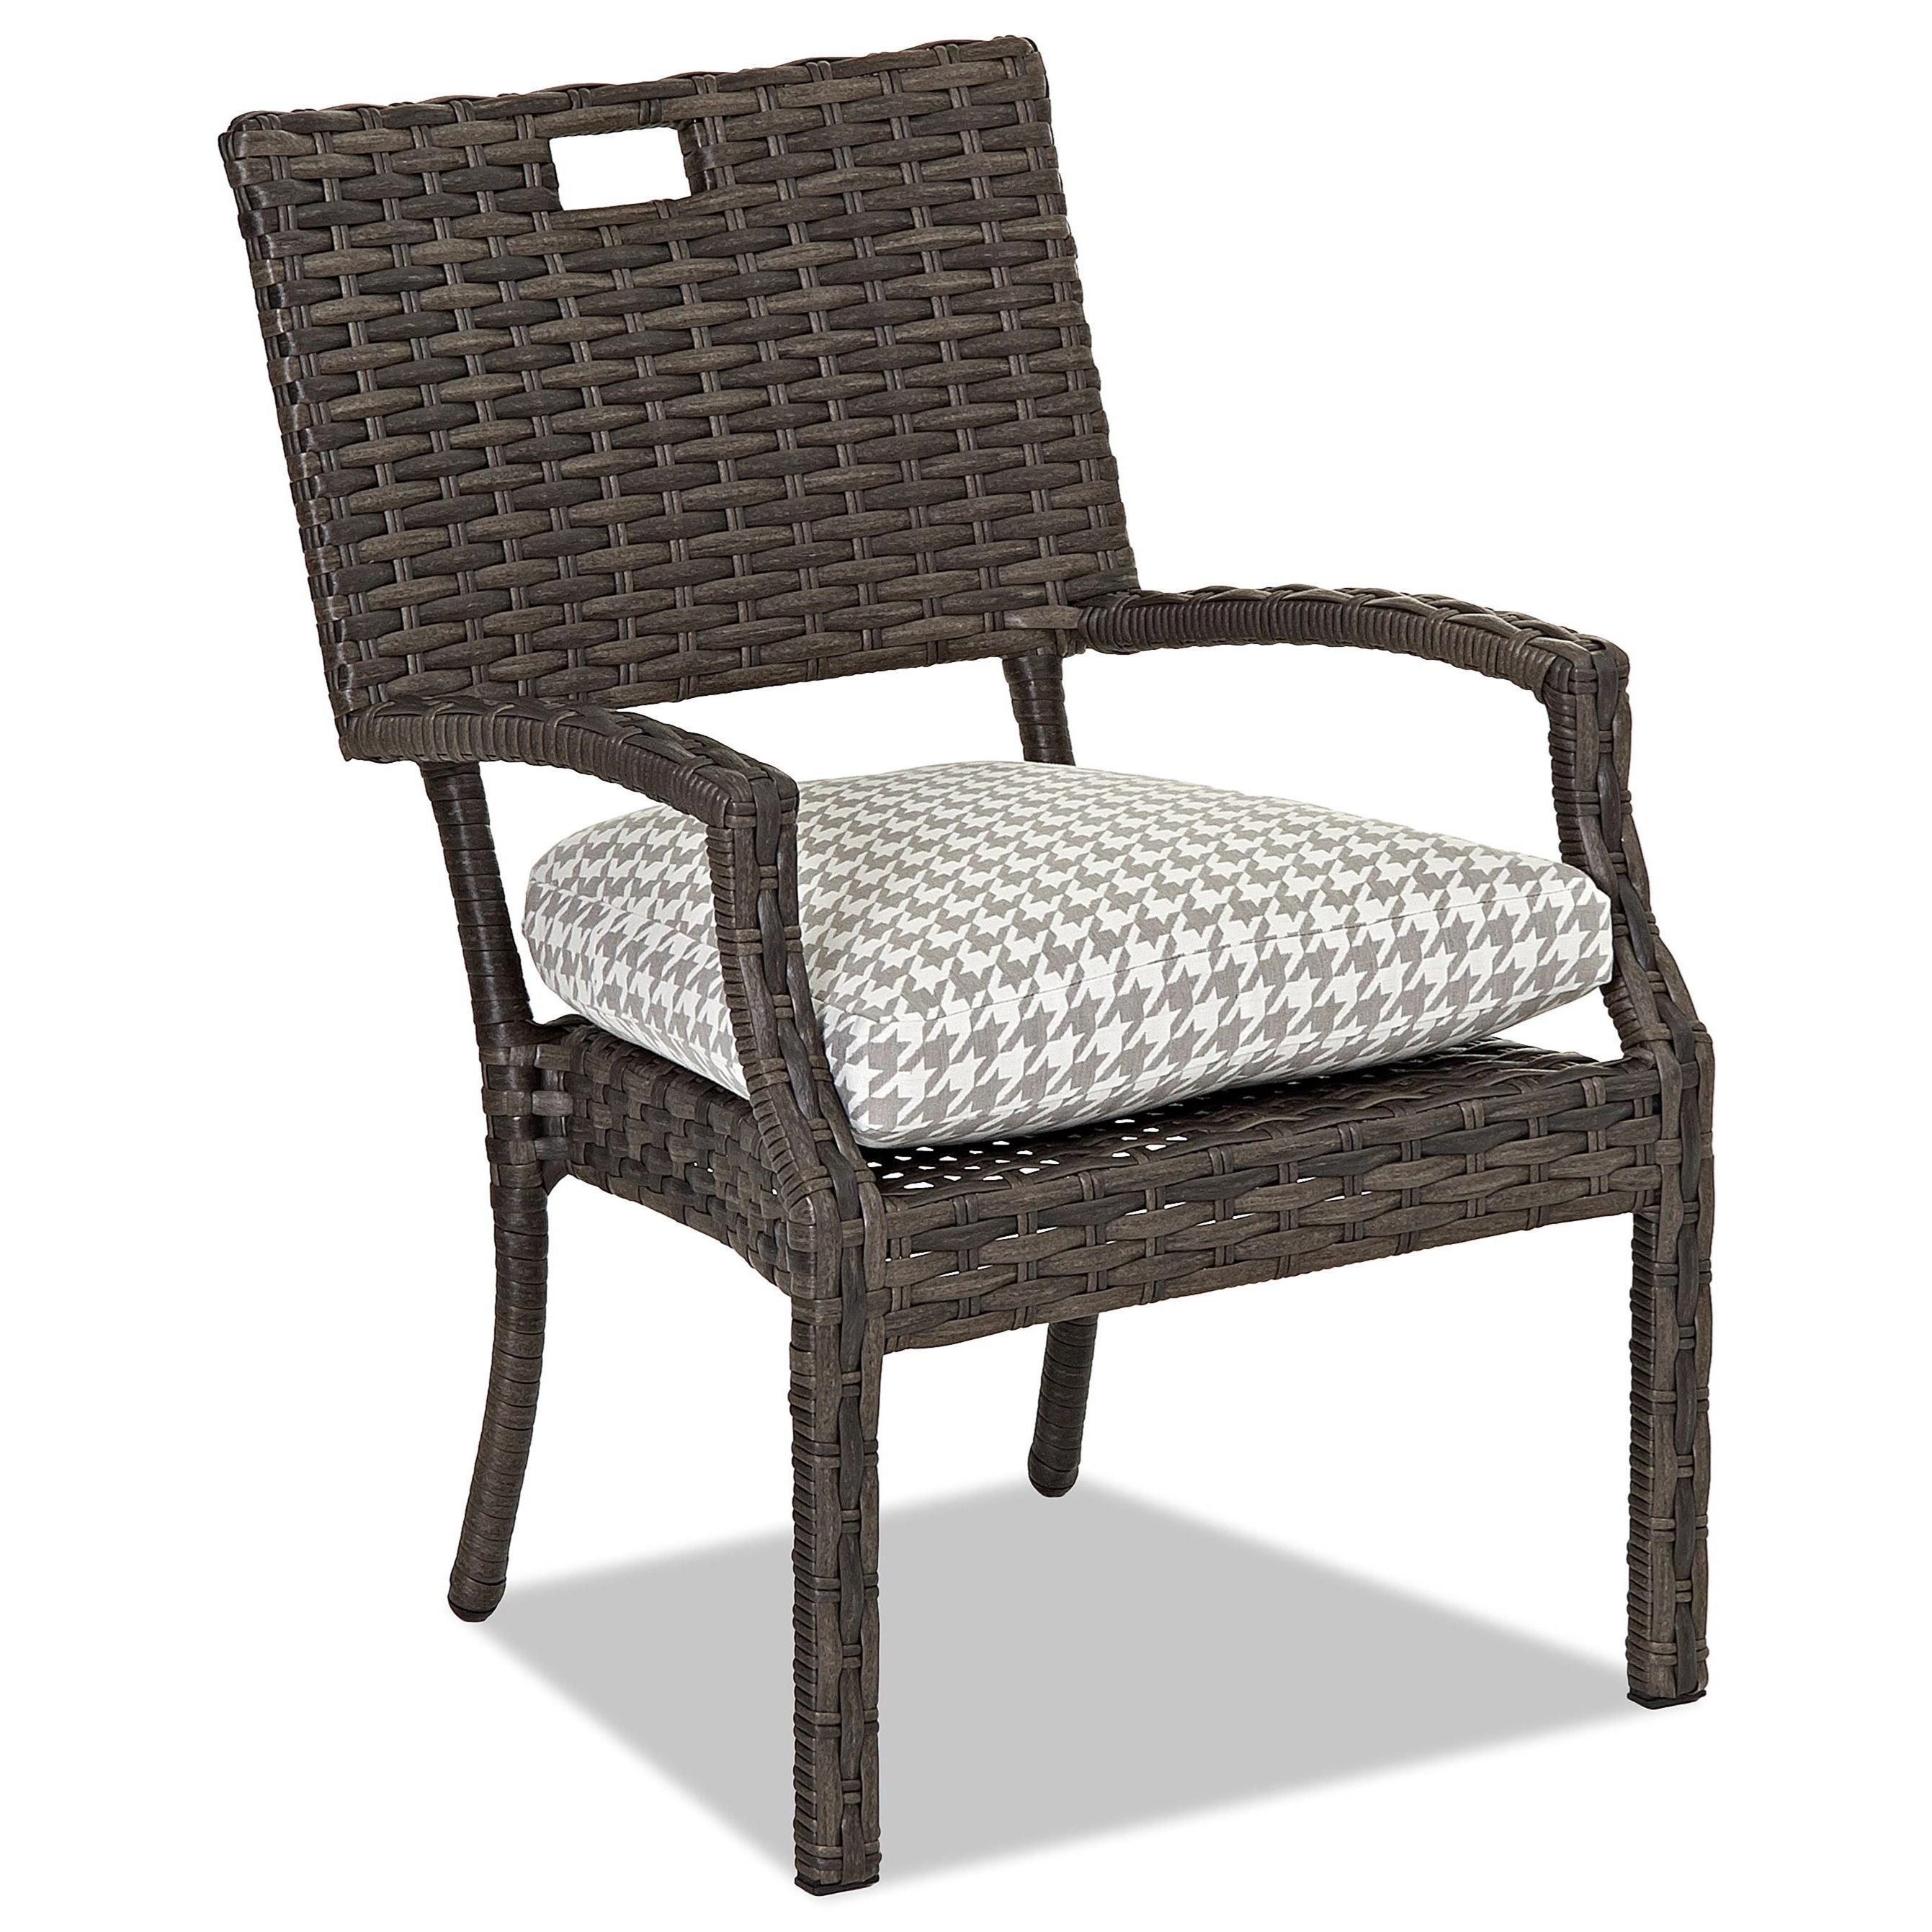 4 Pack Stack Din Chair w/ Reversible Cushion